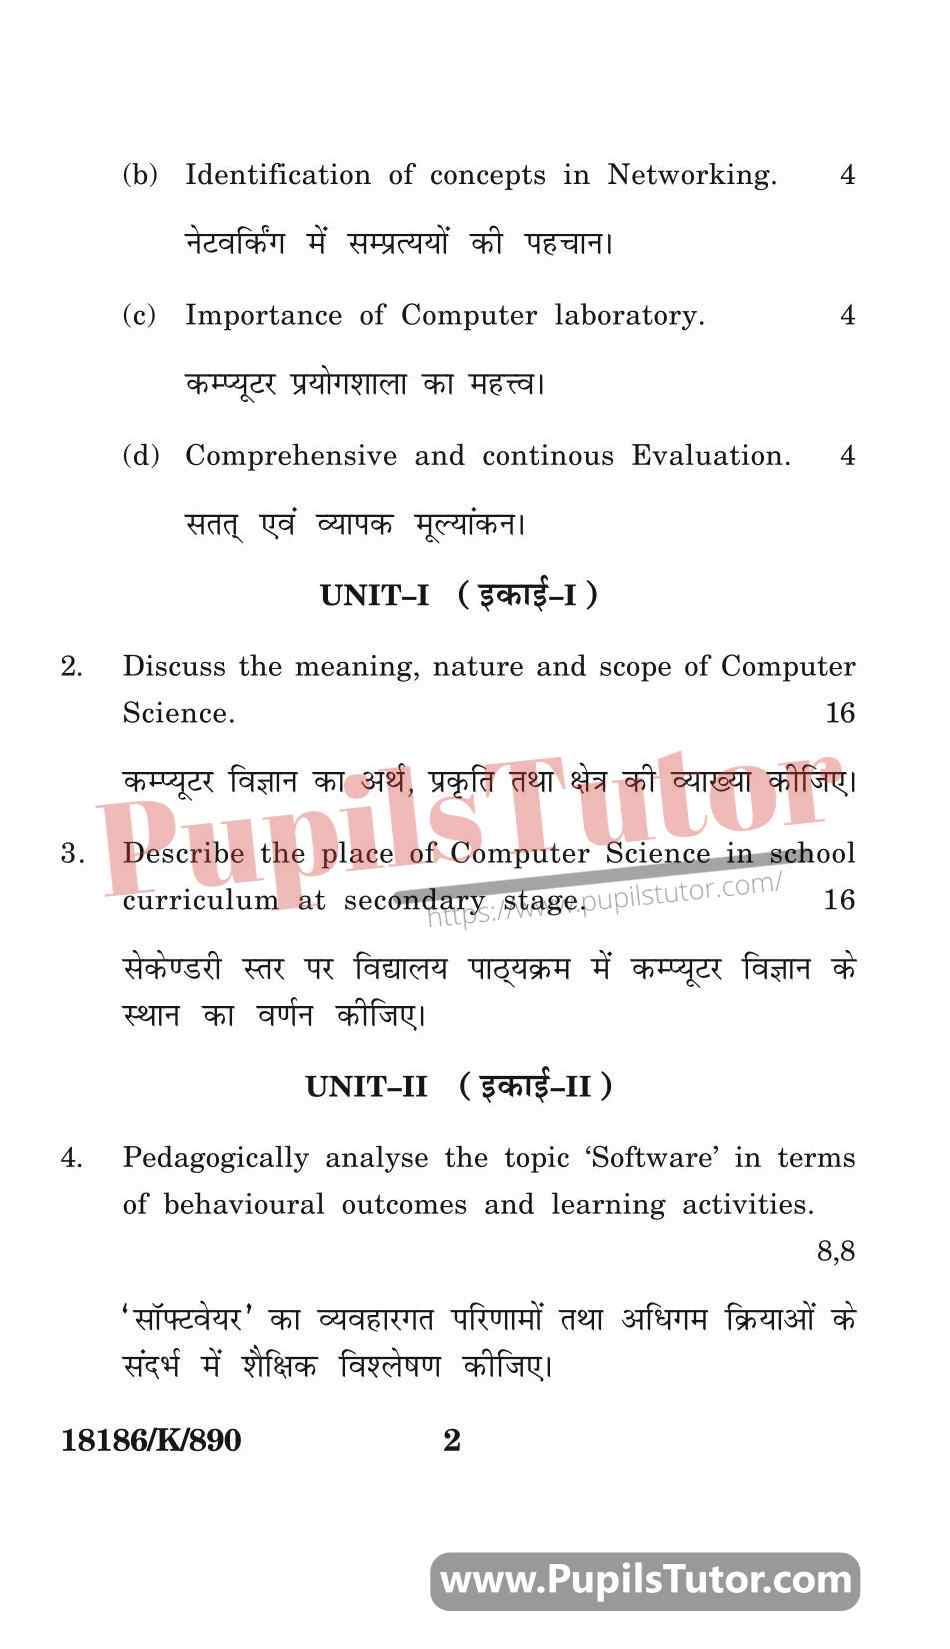 KUK (Kurukshetra University, Haryana) Pedagogy Of Computer Science Question Paper 2020 For B.Ed 1st And 2nd Year And All The 4 Semesters In English And Hindi Medium Free Download PDF - Page 2 - www.pupilstutor.com